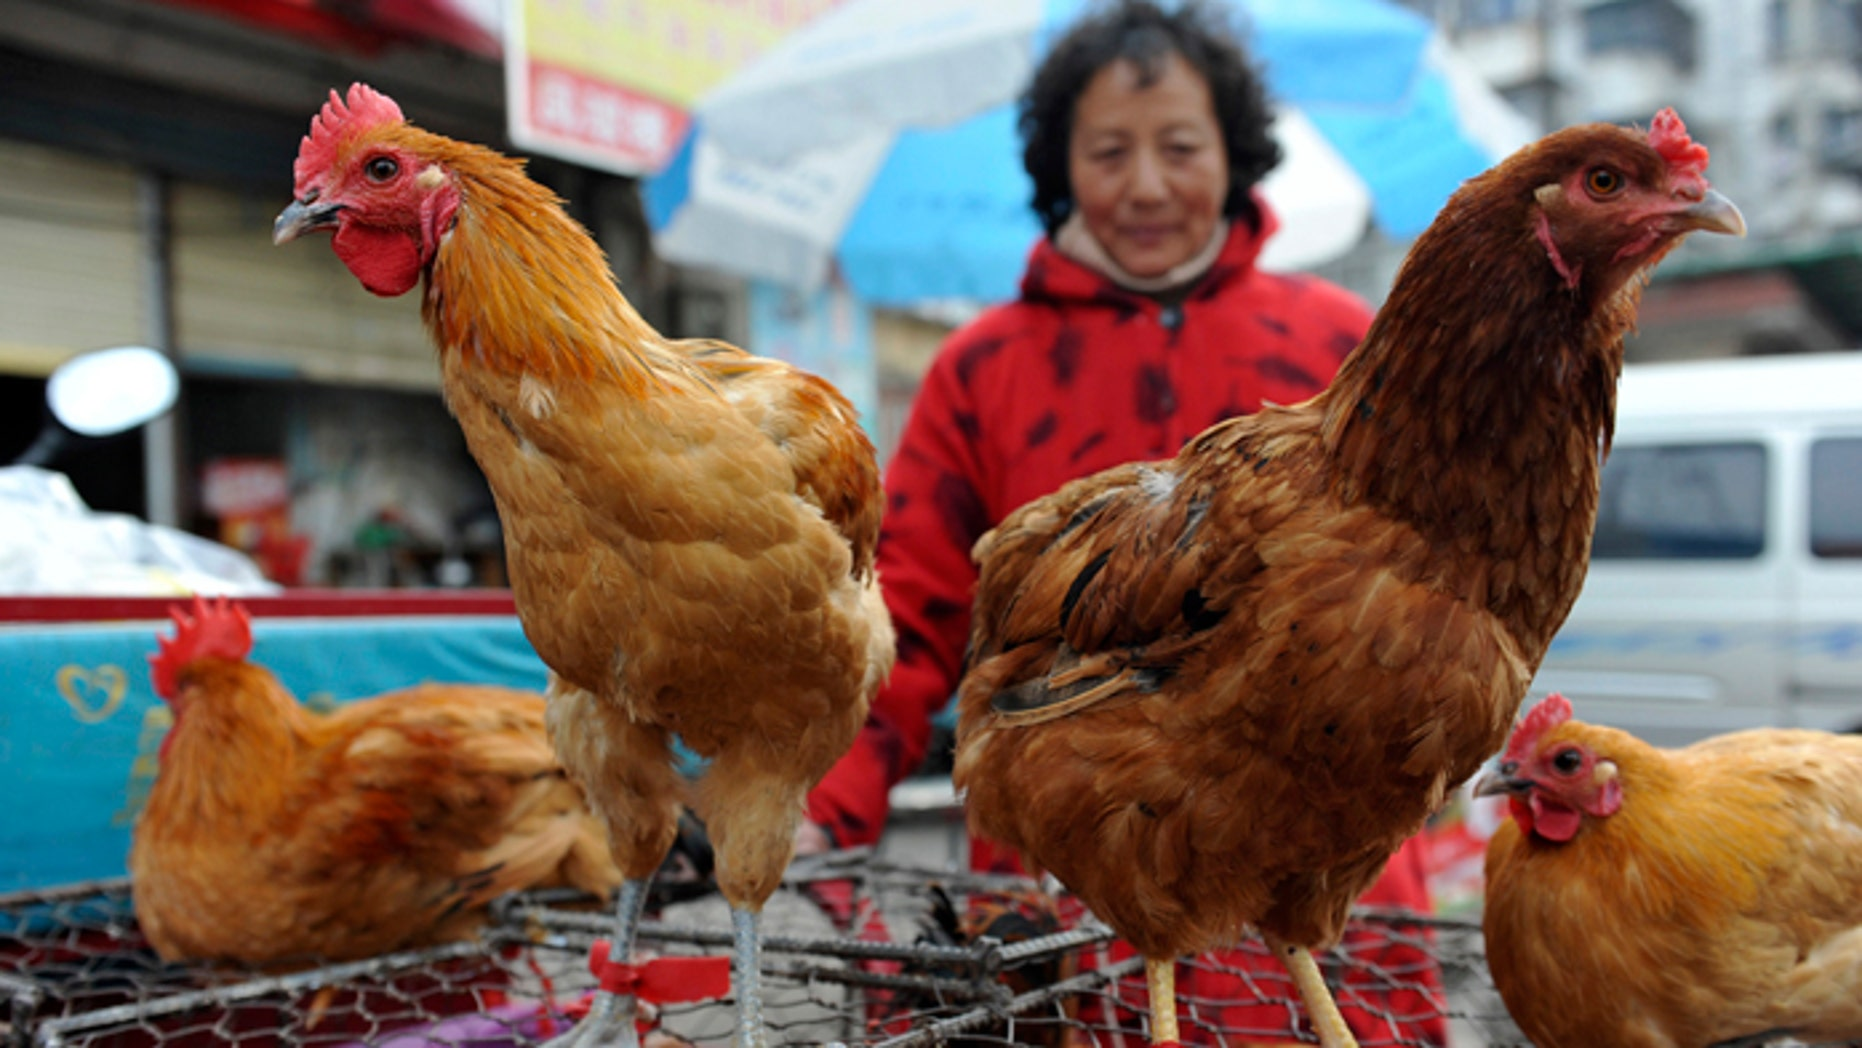 A vendor waits for customers near chicken cages at a market in Fuyang city, in central China's Anhui province. Two Shanghai men have died from a lesser-known type of bird flu in the first known human deaths from the strain.